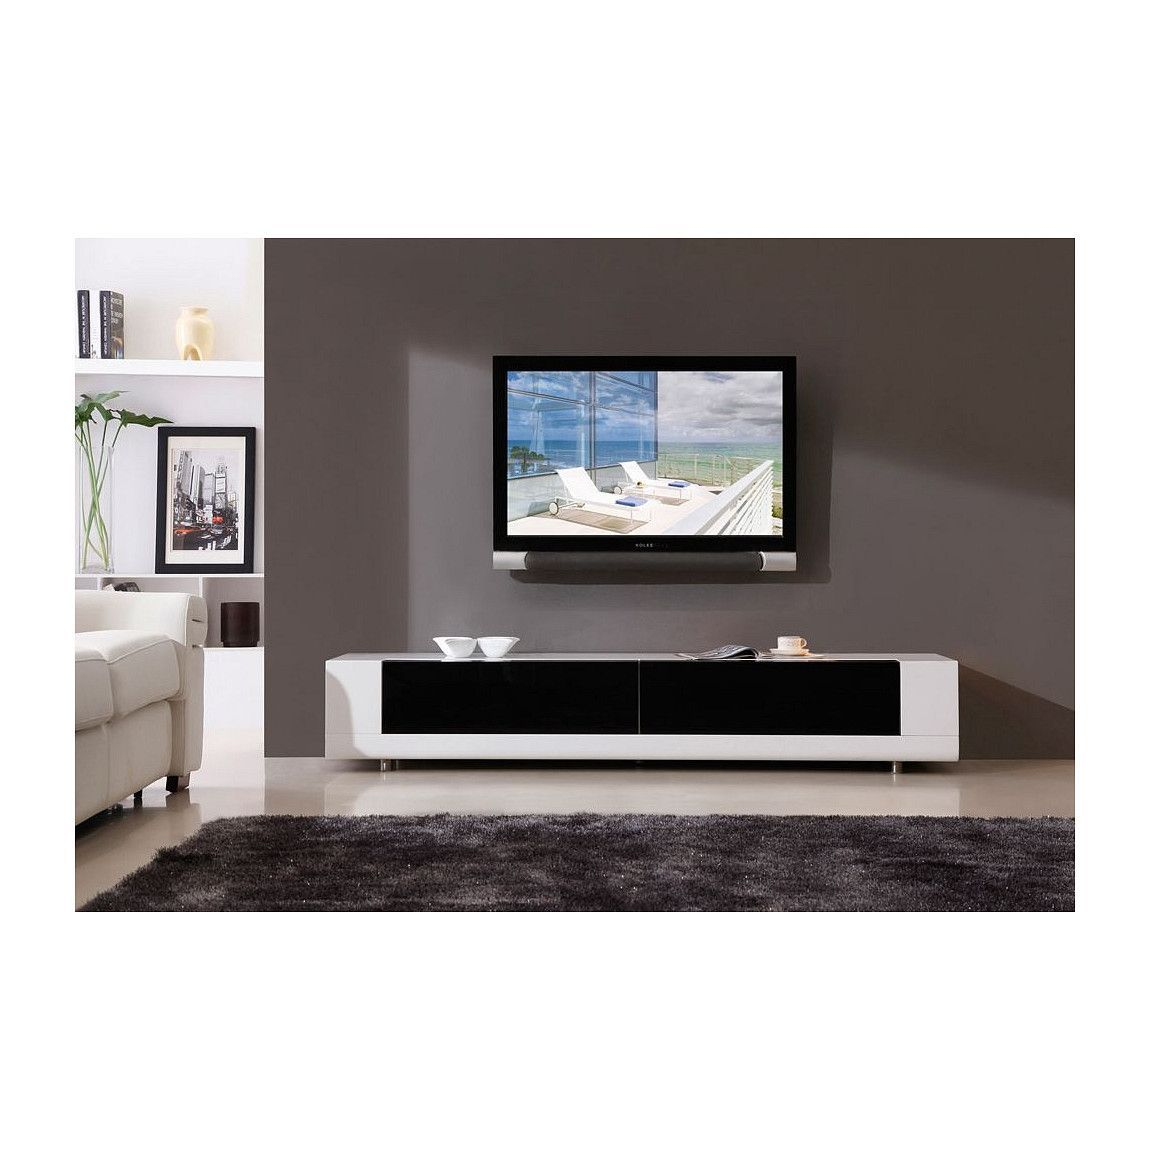 B Modern Editor Tv Stand Black Living Room Modern Media